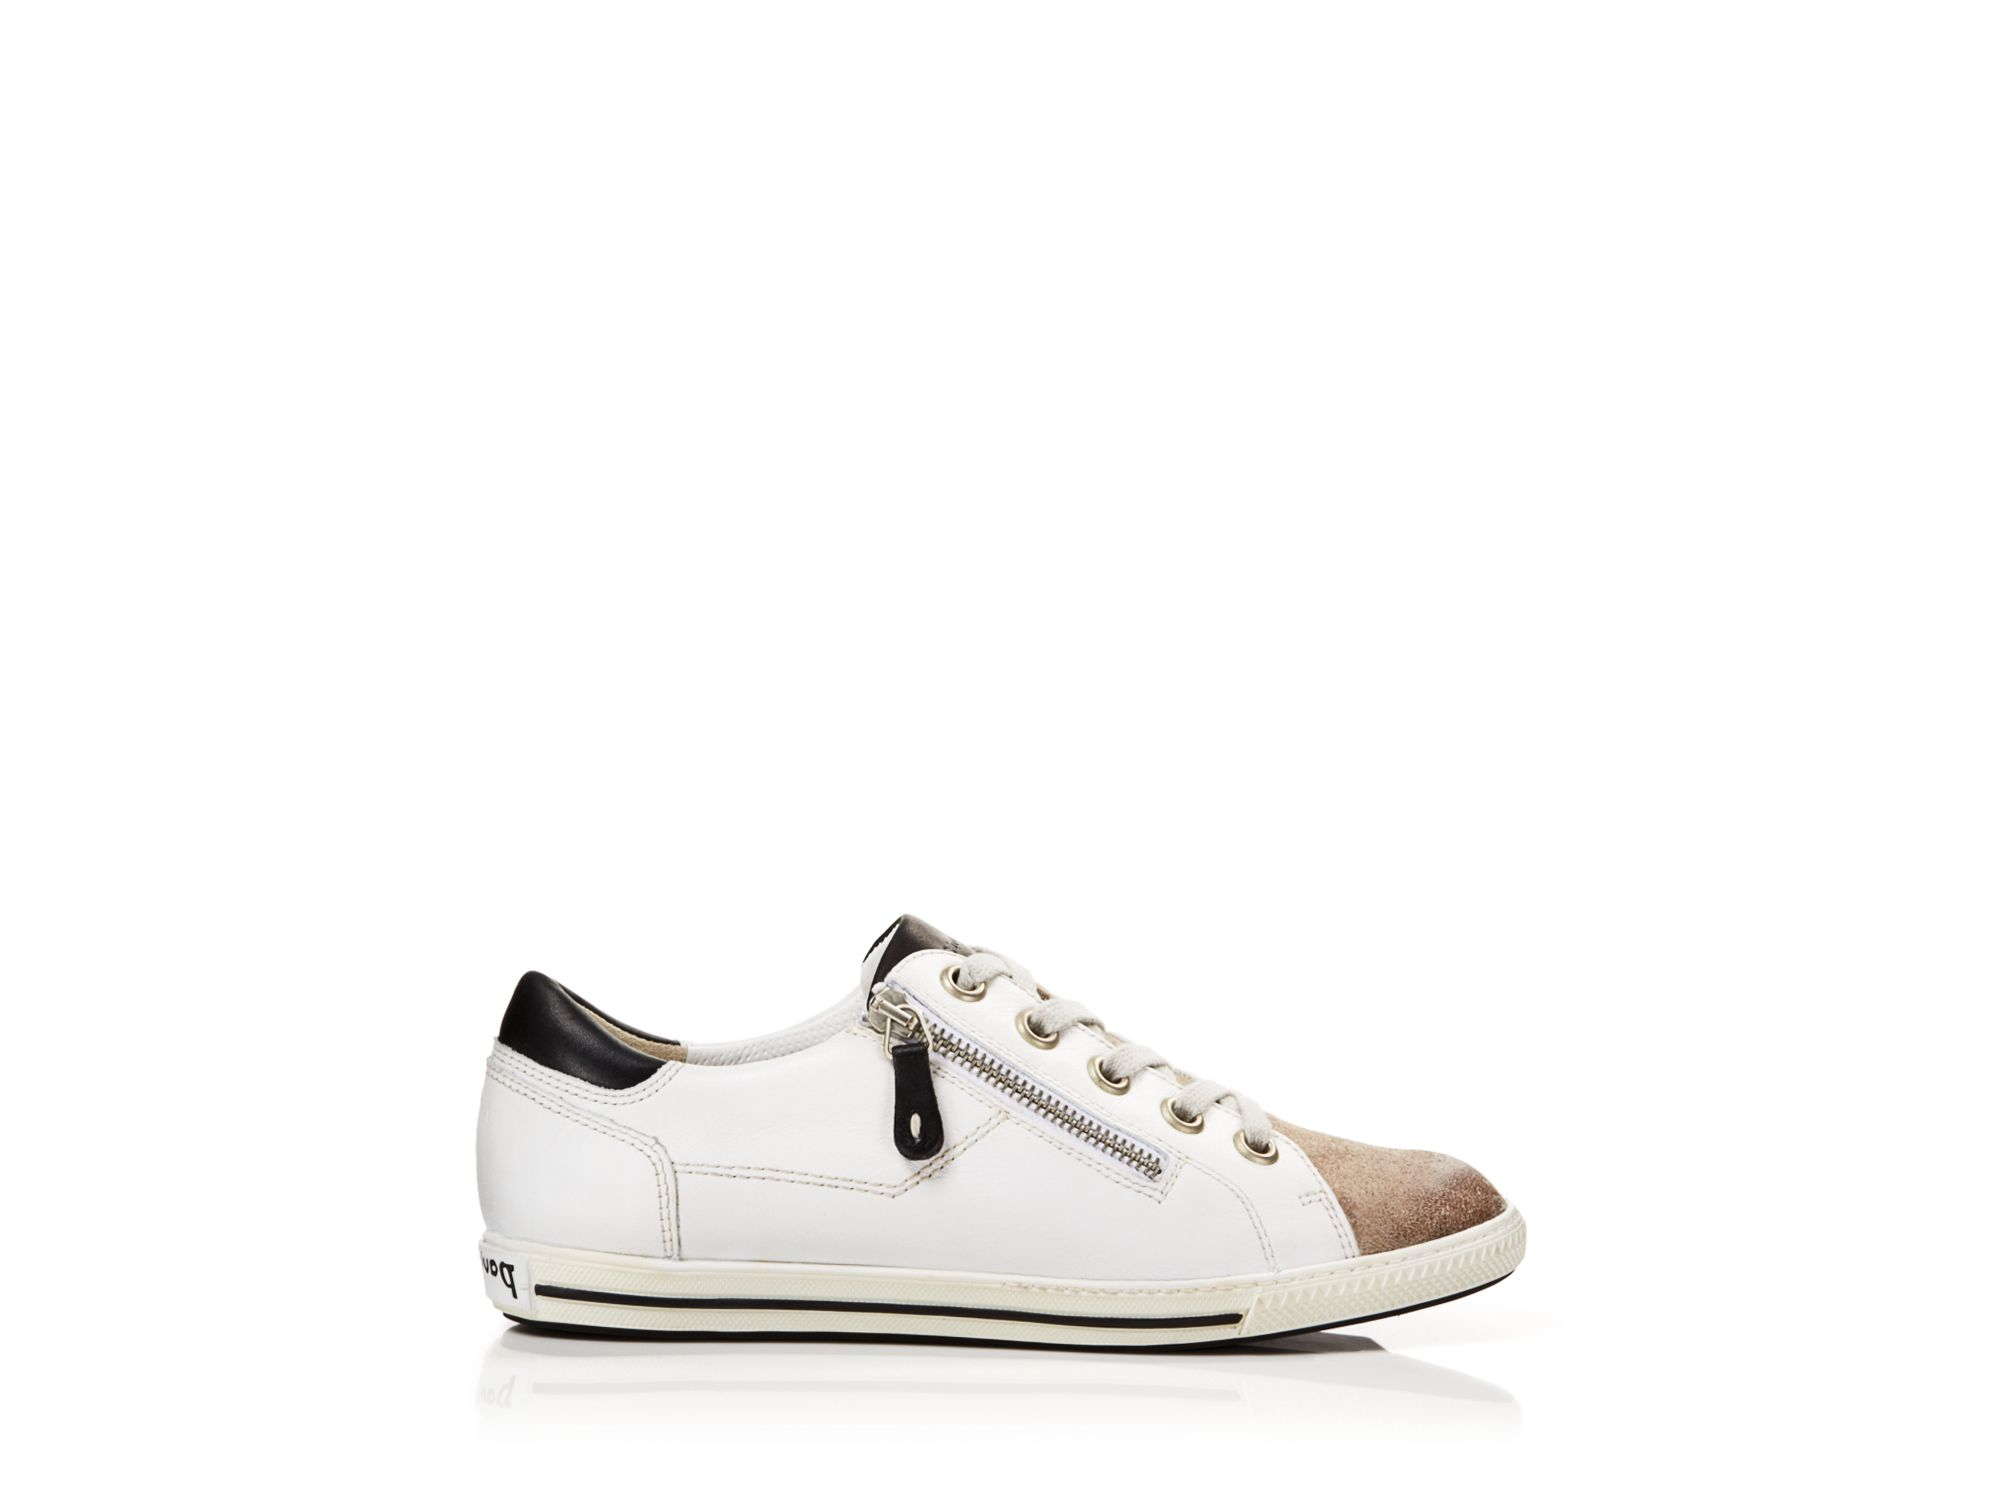 lyst paul green lace up sneakers chaplin side zip in white. Black Bedroom Furniture Sets. Home Design Ideas